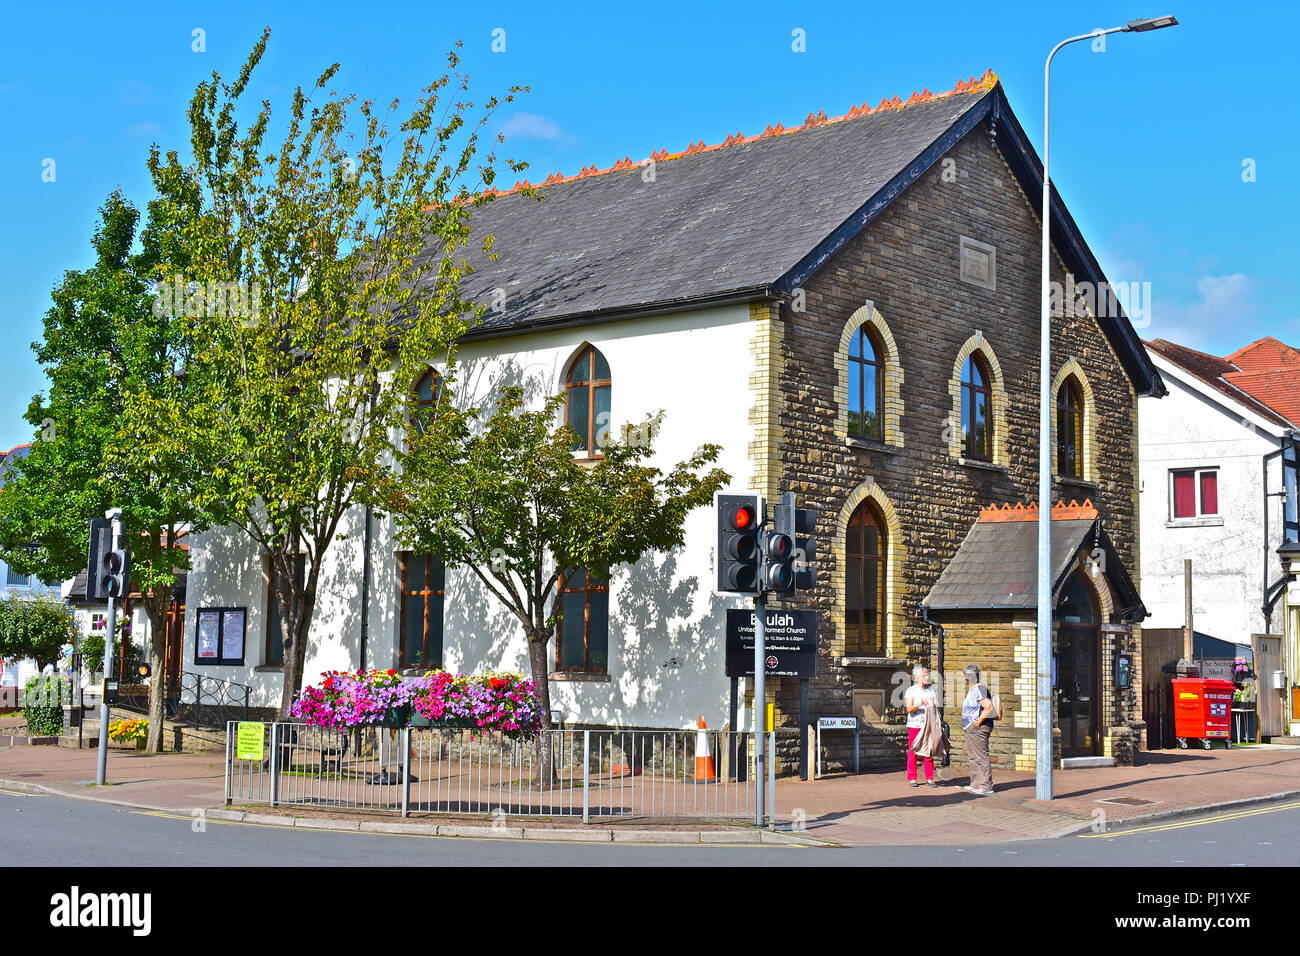 Beulah United Reformed Church in Beulah Road, Rhiwbina, Cardiff, S.Wales - Stock Image